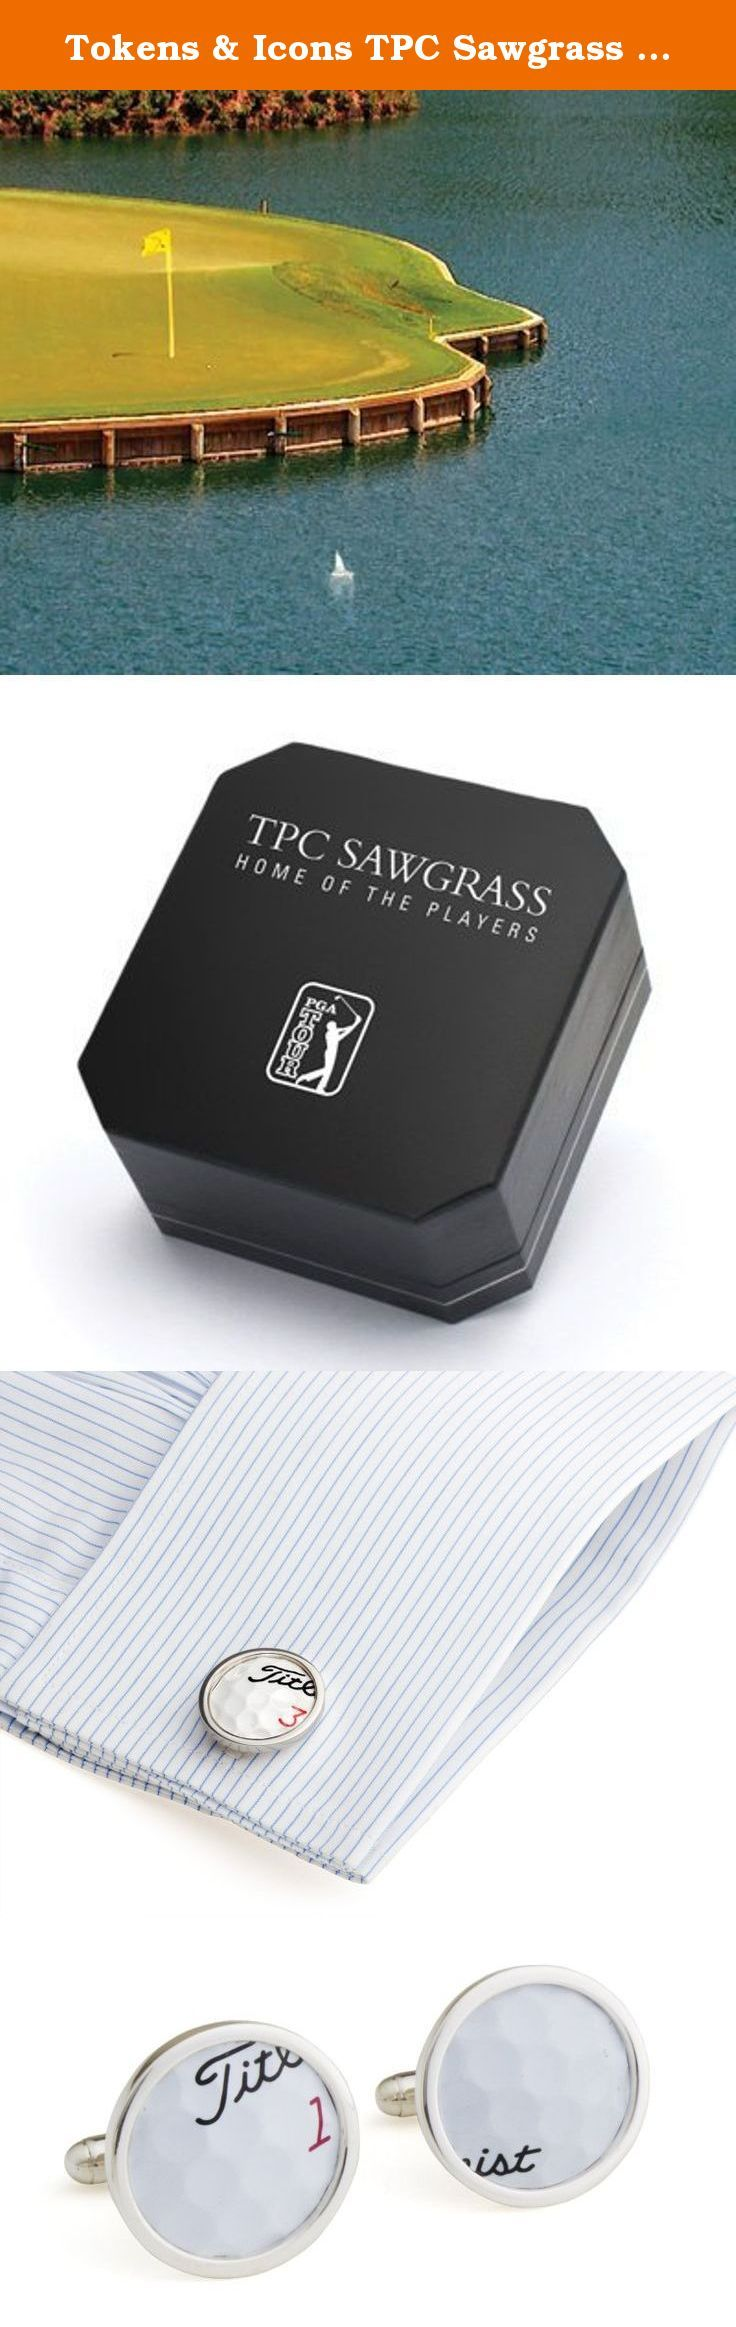 Tokens & Icons TPC Sawgrass Golf Ball Cuff Links. A unique opportunity to celebrate the home of the players. These sterling silver cufflinks are crafted from genuine TPC Sawgrass played golf balls pulled from the water surrounding the famed 17th Island Green. Hit by pro and duffer alike, the retrieval was witnessed by the Head Golf Professional or PGA Tour Staff. Set in sterling silver, each Cufflinks carries a PGA Tour hologram with a unique identification number. Use this number to…